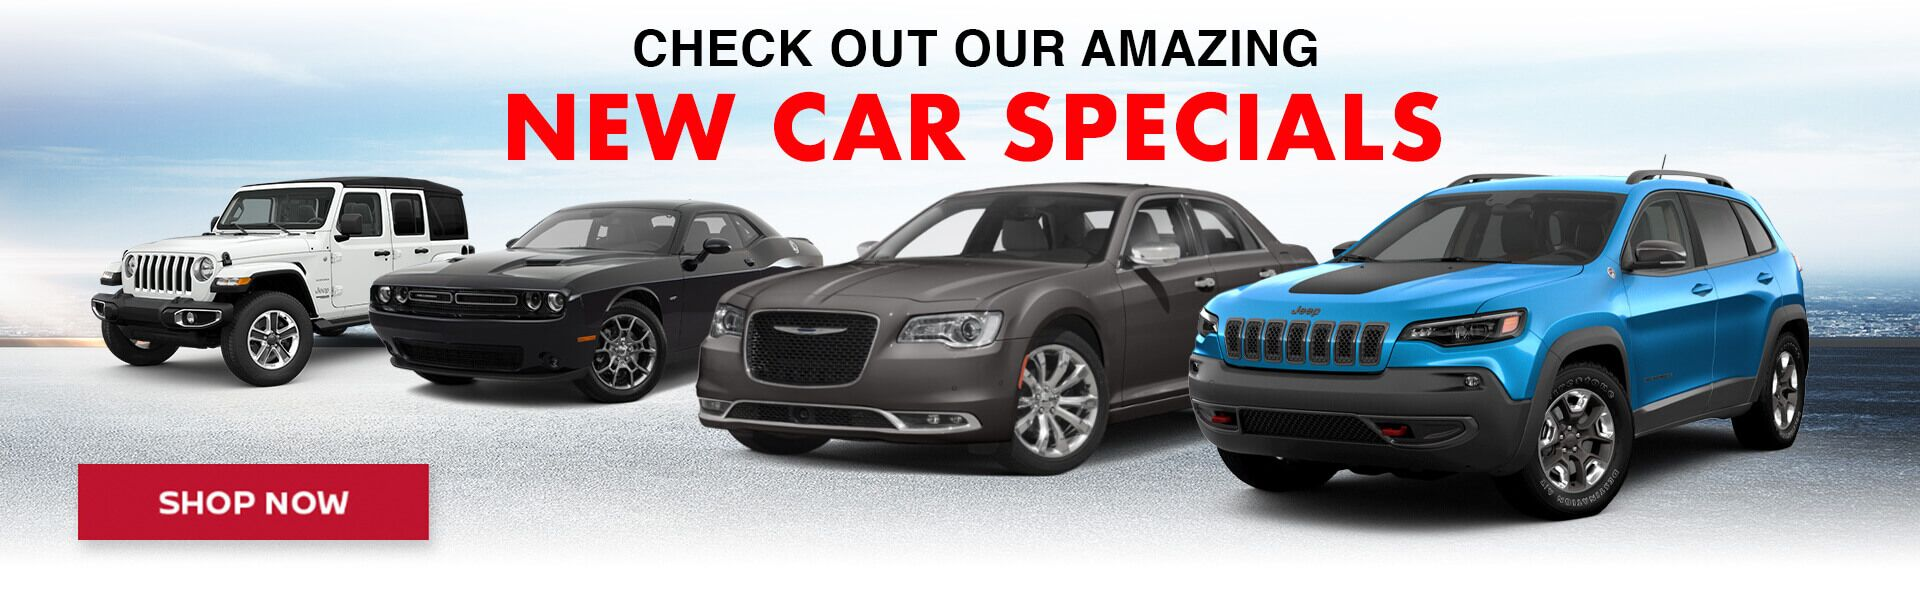 Check out our amazing new car specials